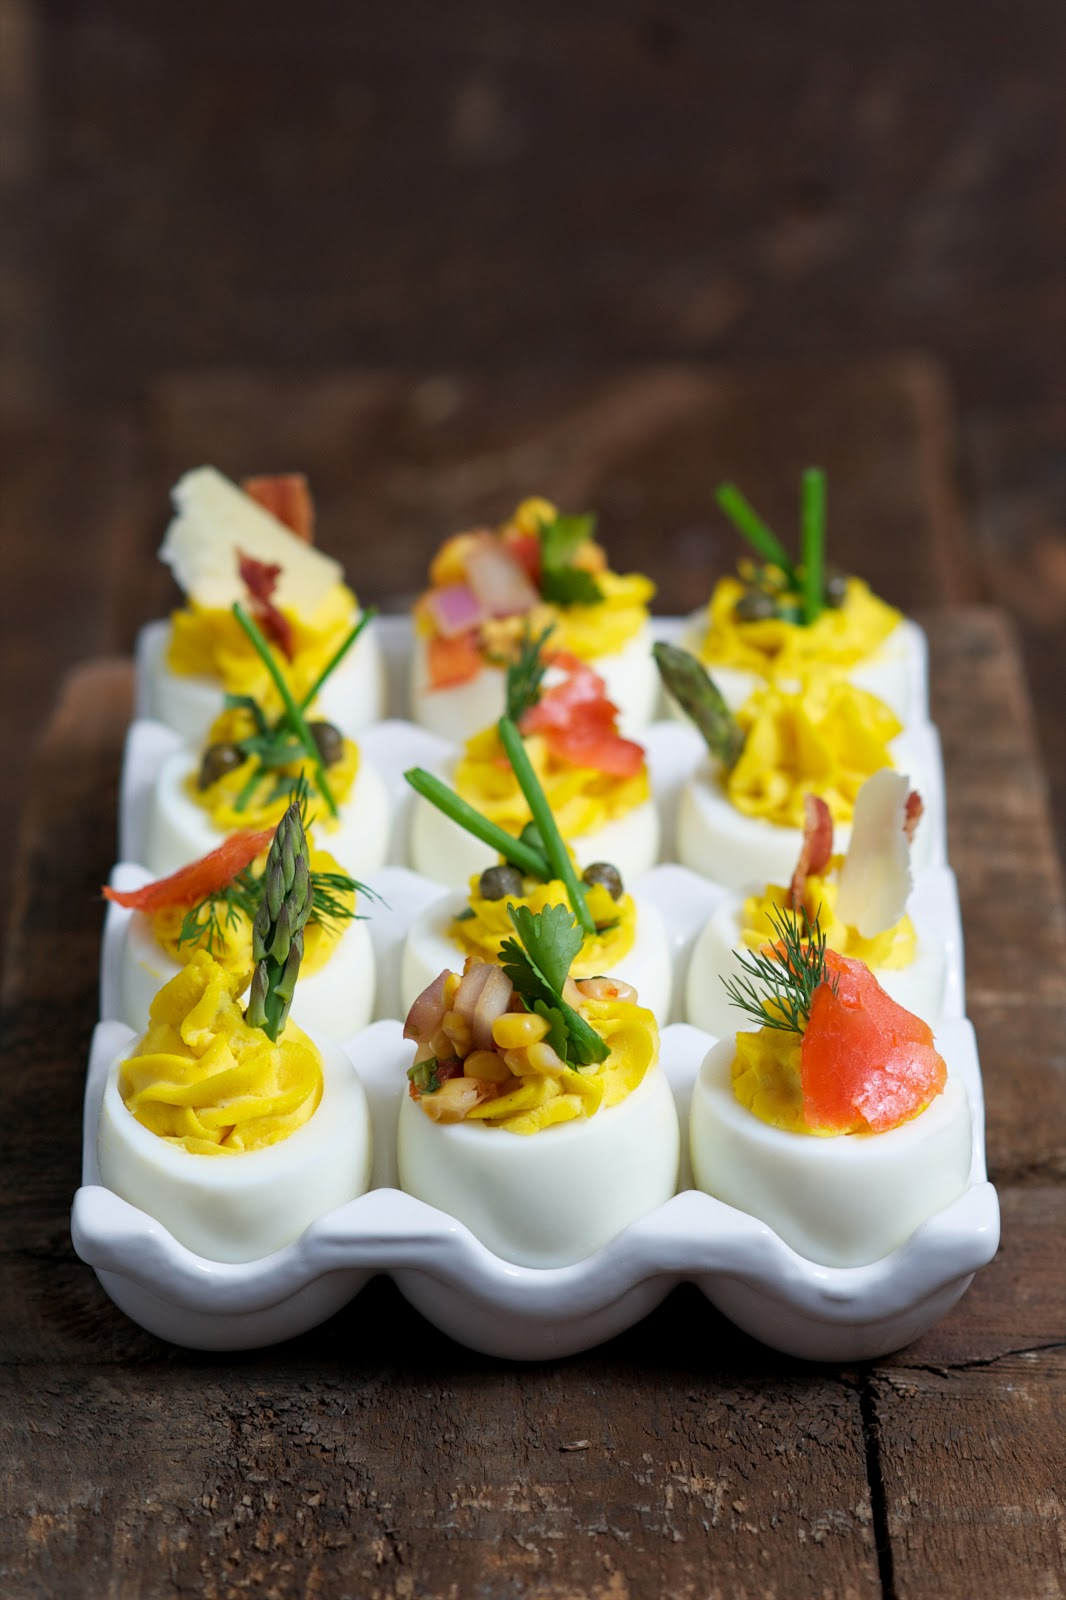 Cold appetizers rosemarie 39 s kitchen for Table 52 deviled eggs recipe